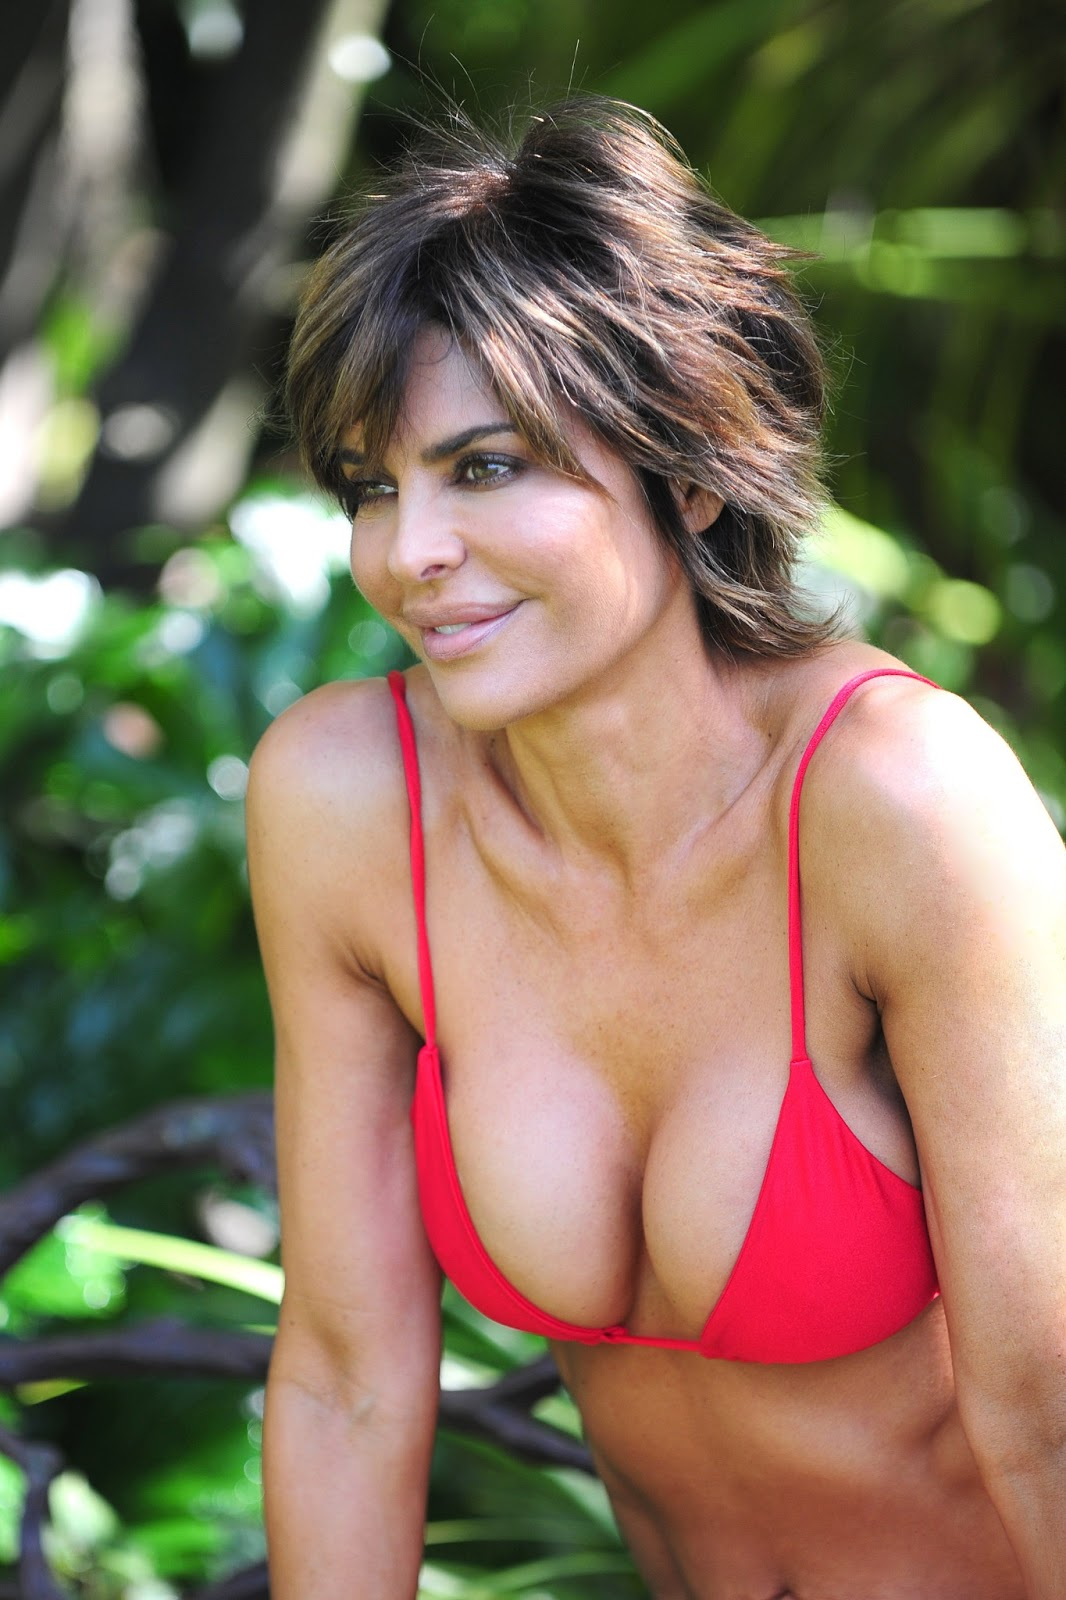 All Lisa rinna hot think, that